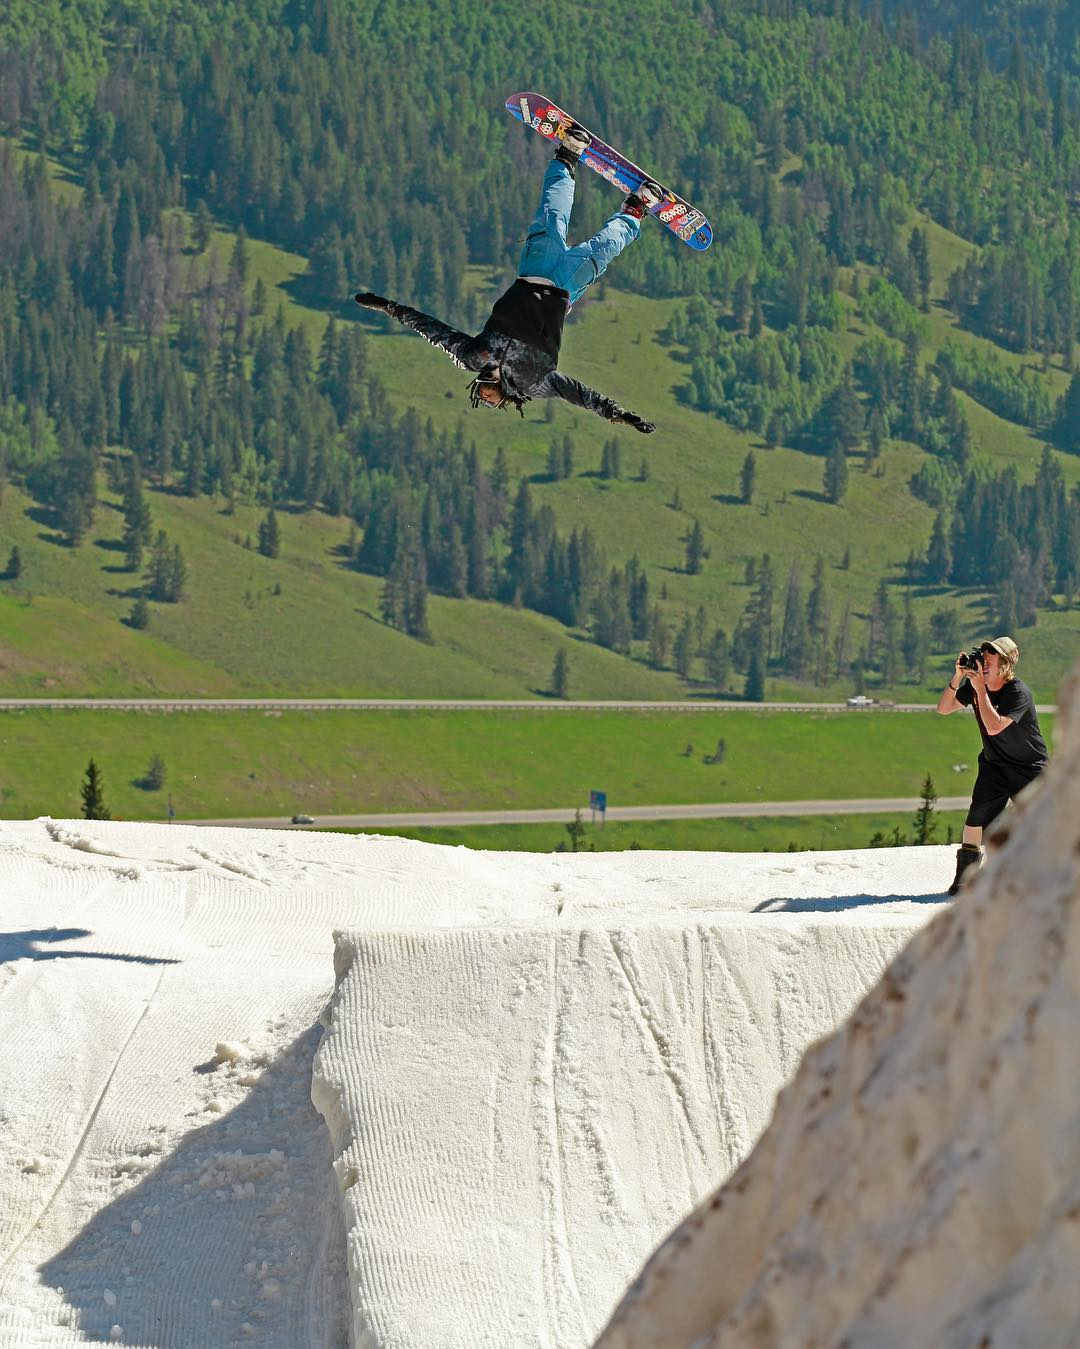 Flux rider, Stephon Deifer @duh_homie_sterph has been flipping out this summer snowboarding as much as he can. This shot is from Woodward Copper ‪#‎flux‬ ‪#‎fluxbindings‬ ‪#‎snowboard‬ ‪#‎snowboarding‬ ❄️